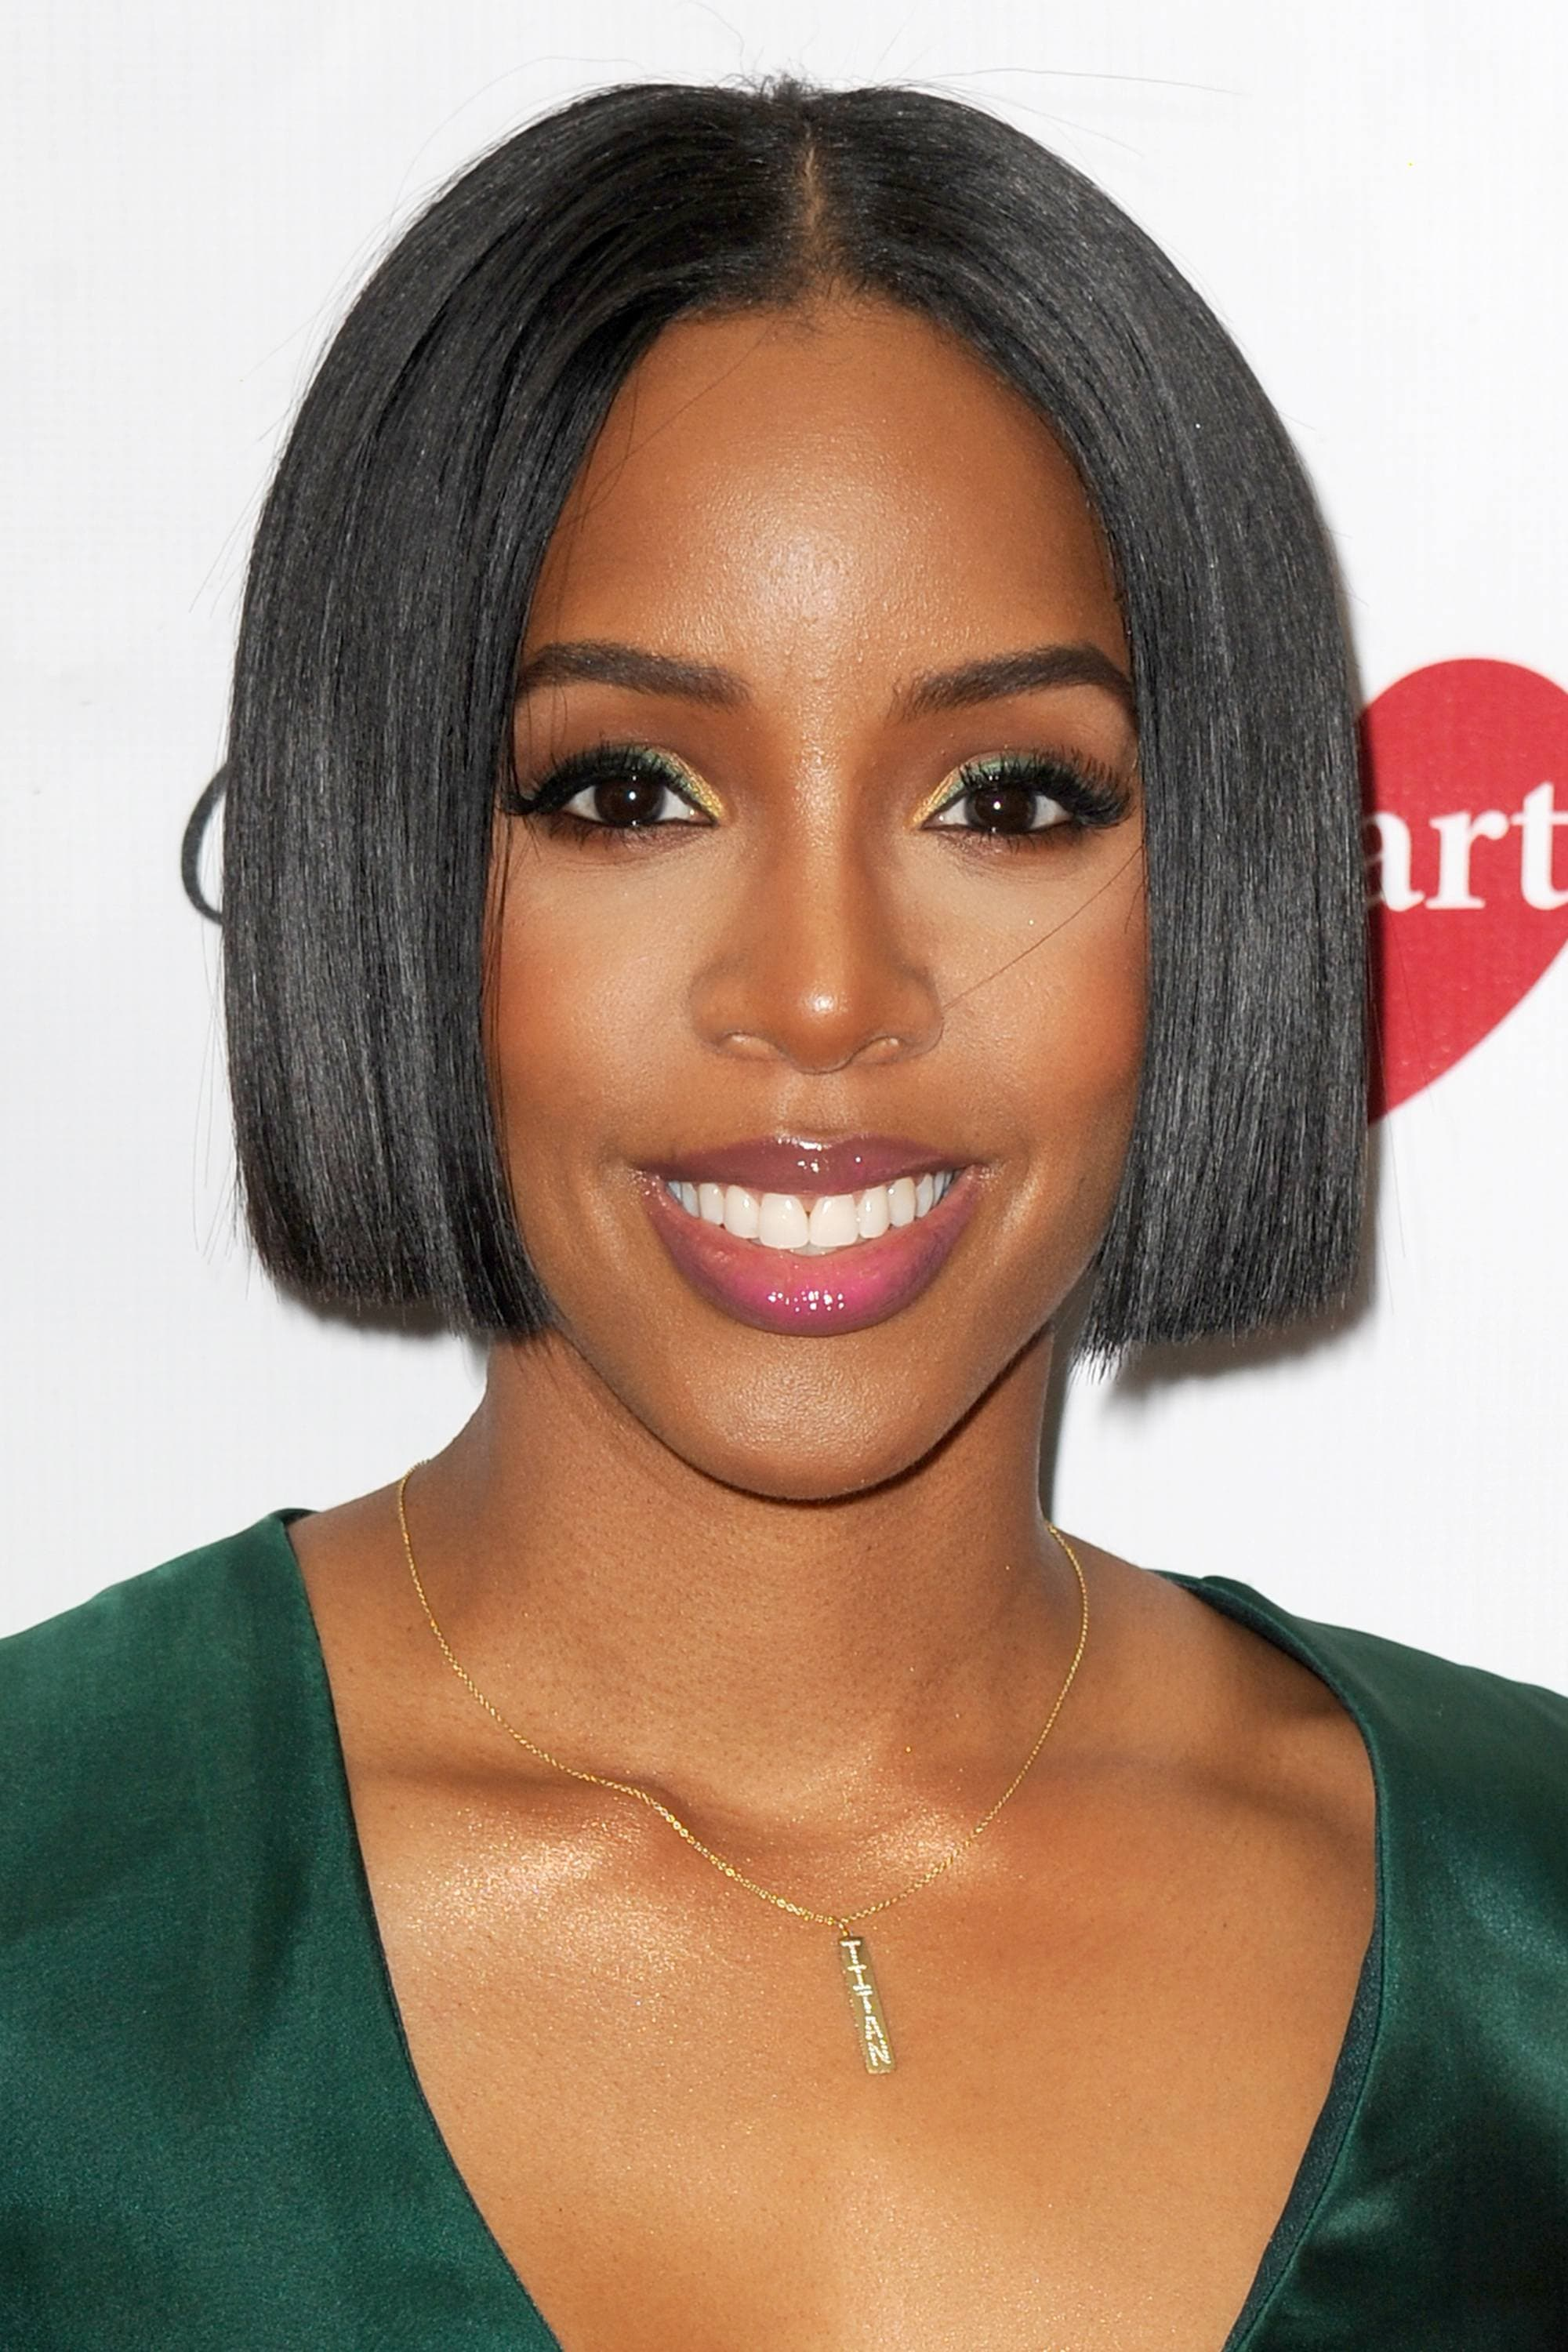 Black bob hairstyles: 5 Looks to try this year | All ...